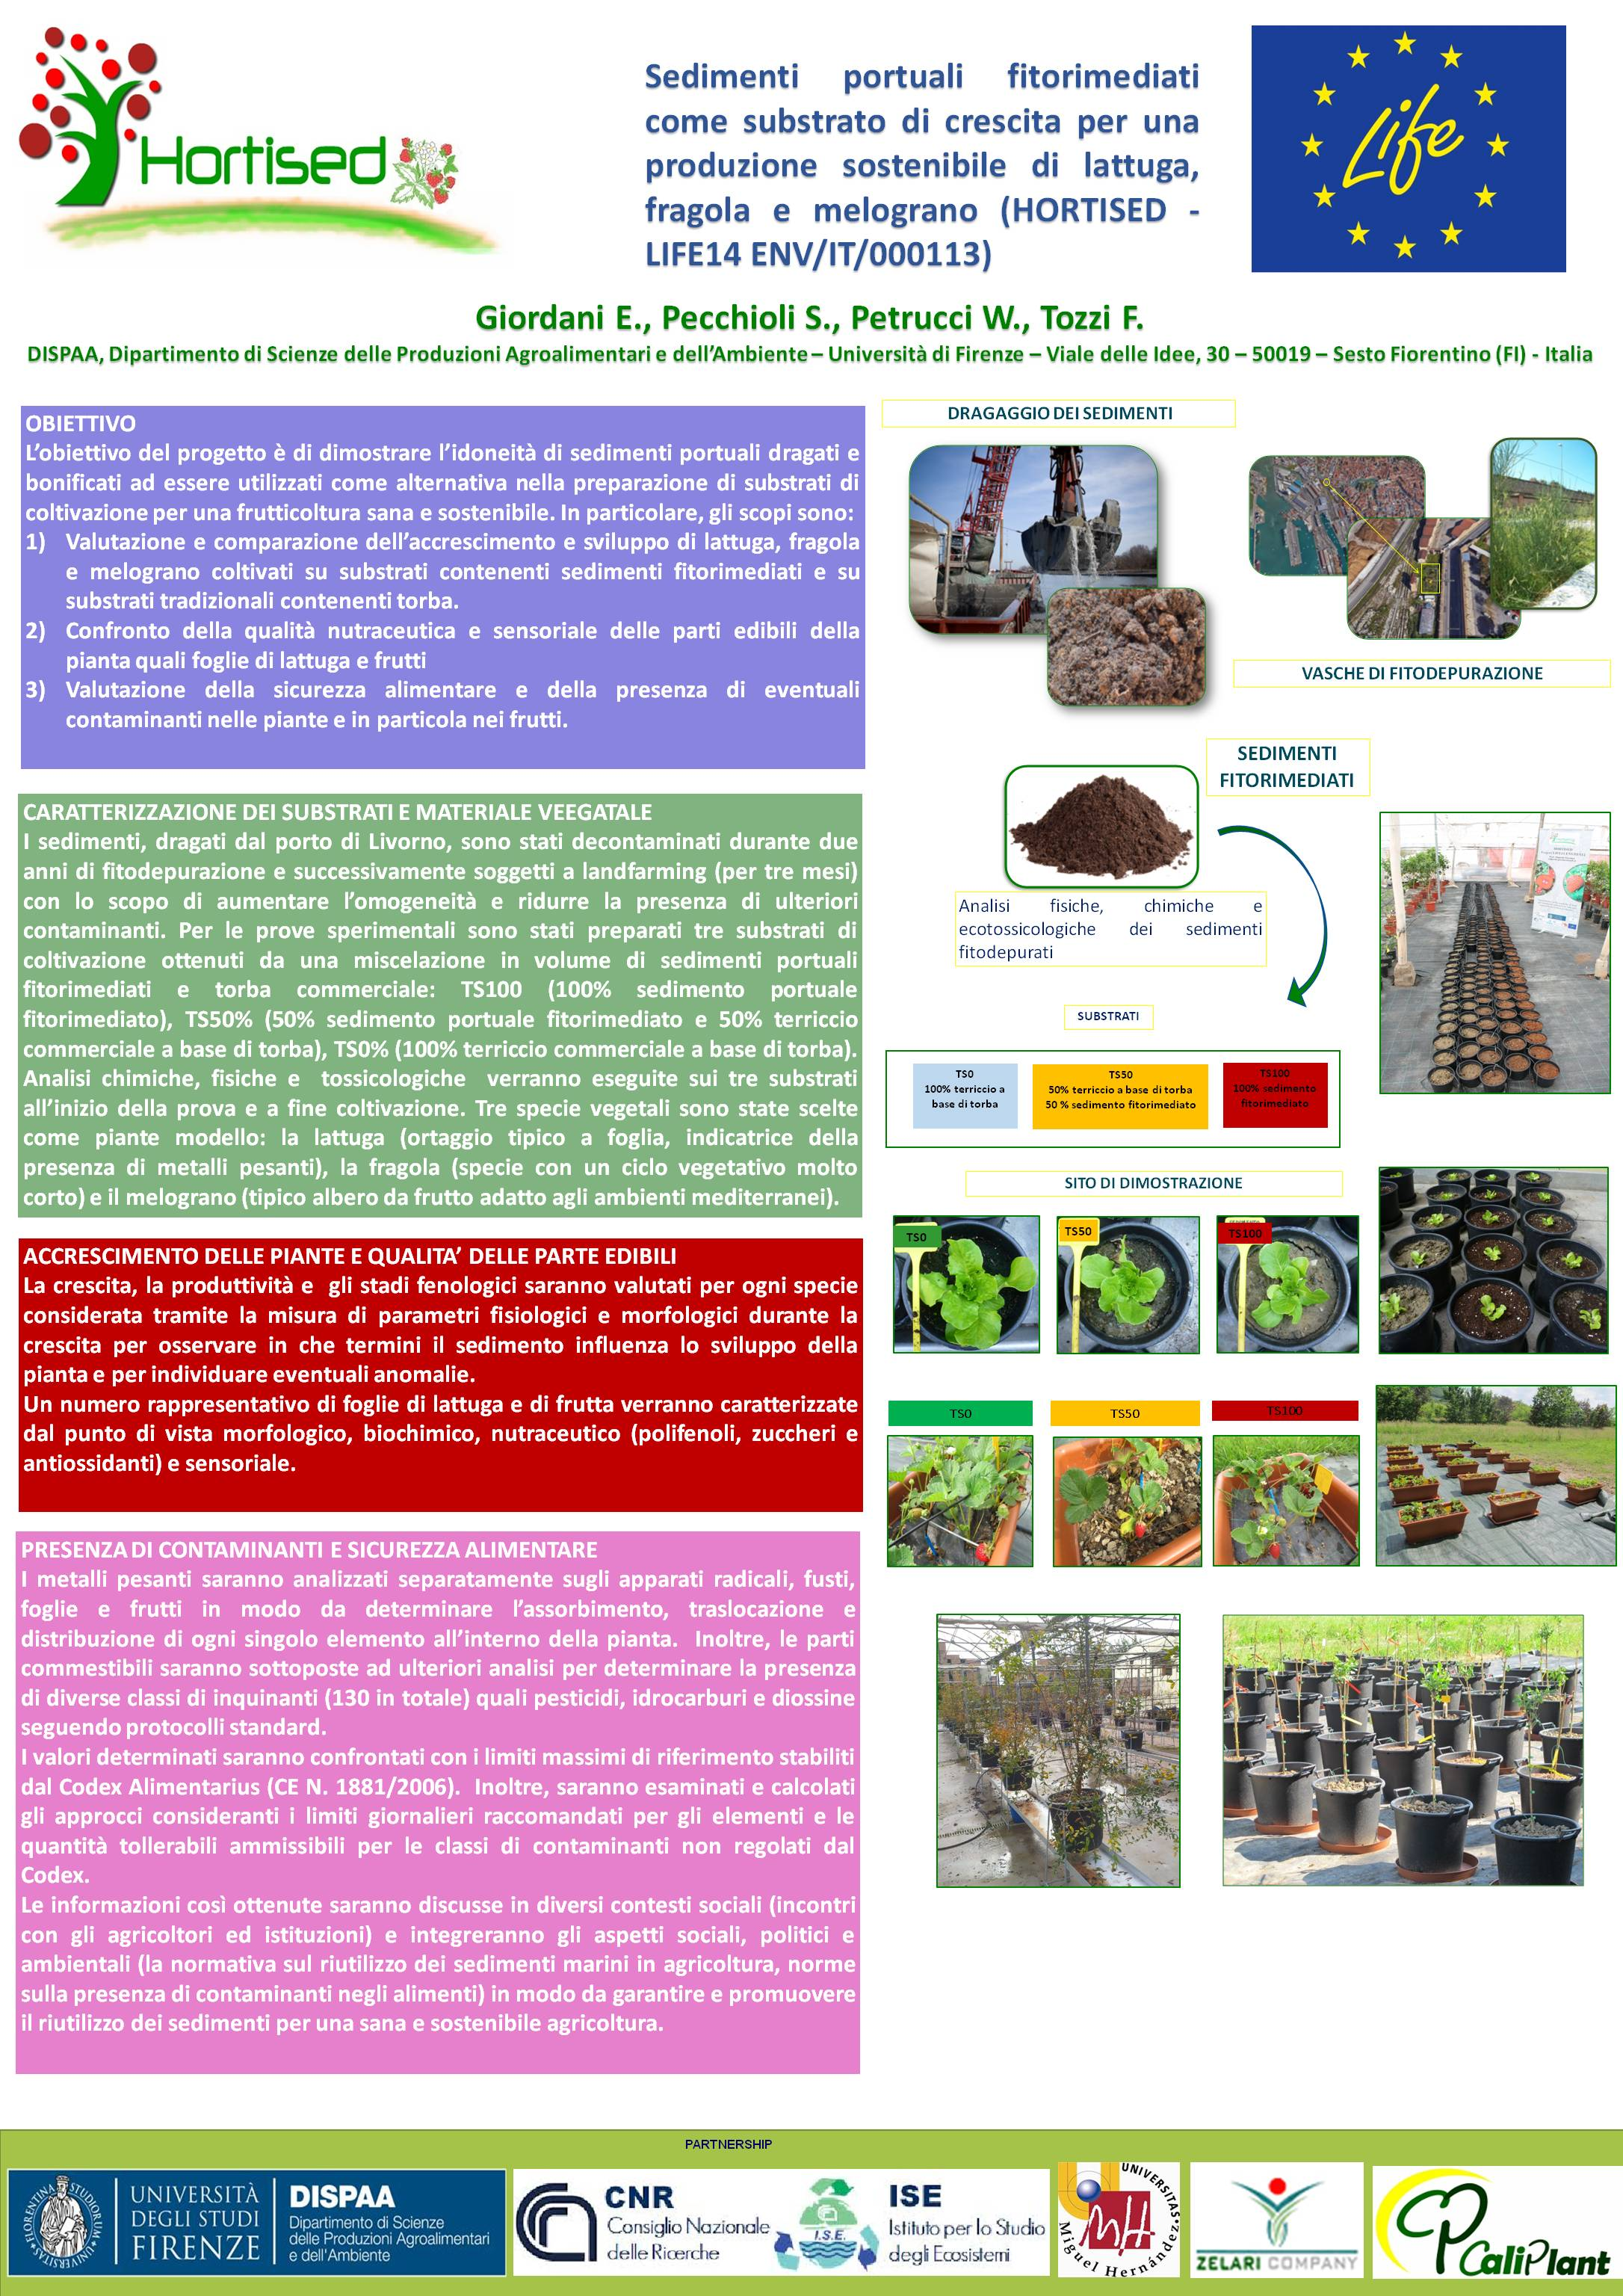 4 - Poster Phd Day FT versione italiana